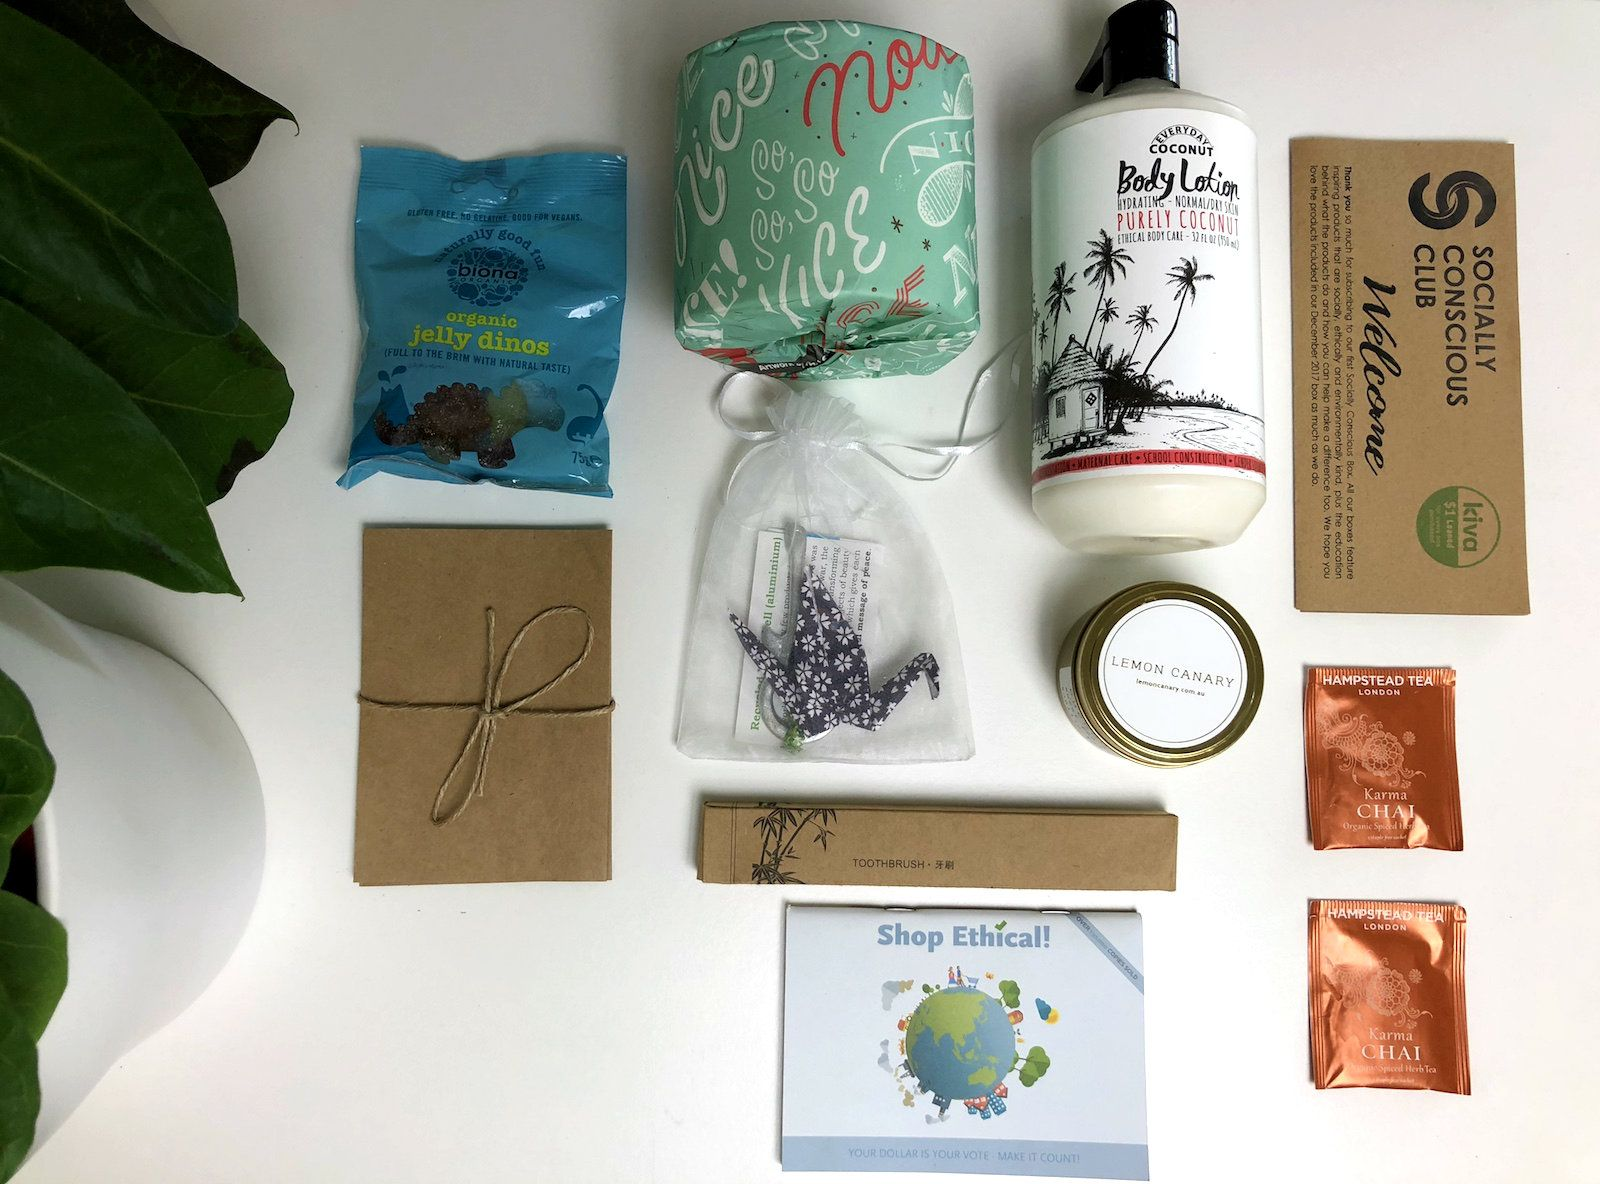 Eco Product Review Socially Conscious Club's Ethical